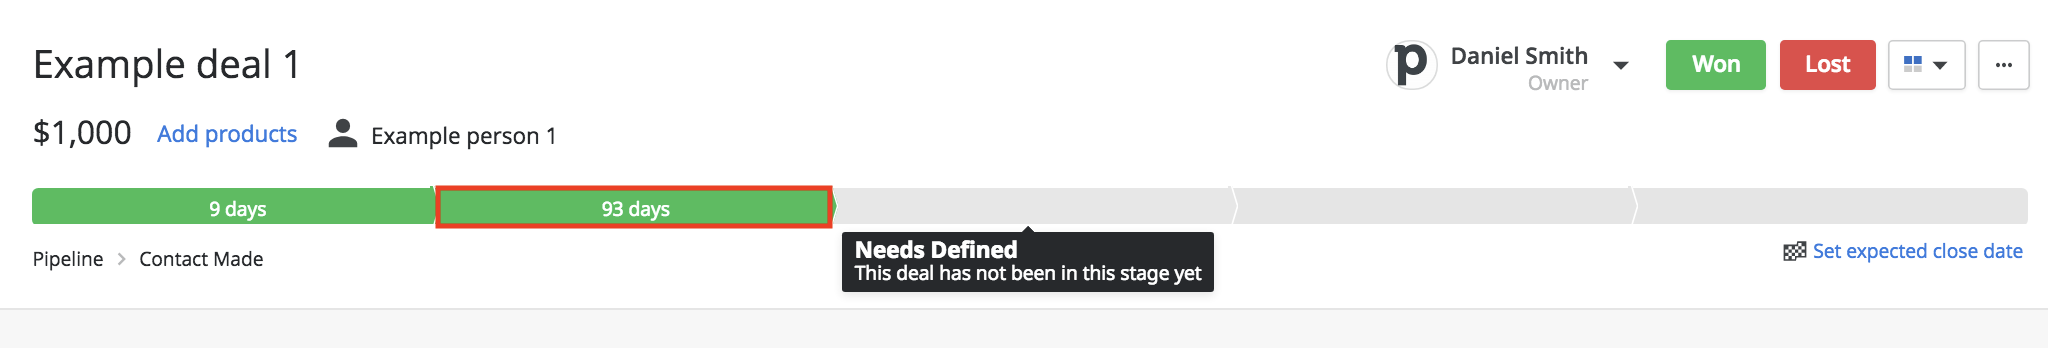 needsdefined.png